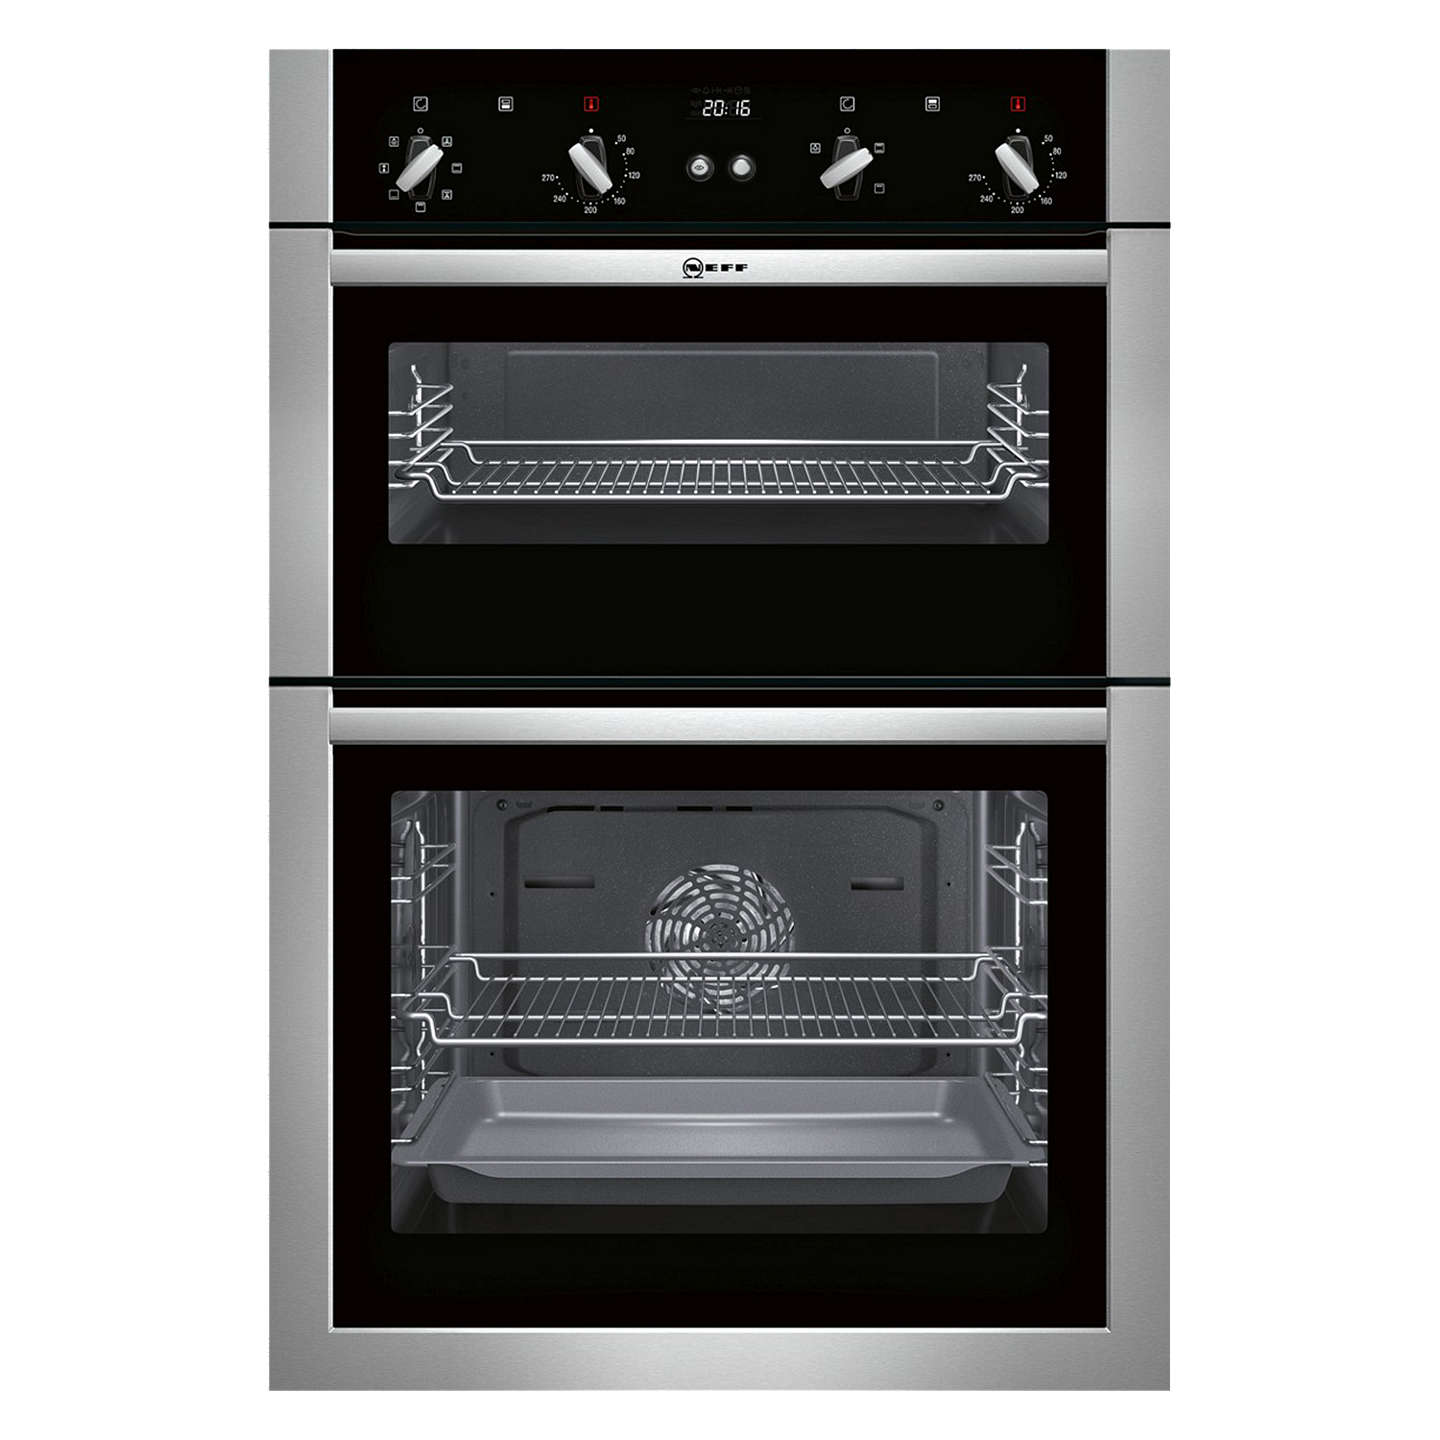 neff u14m42n5gb built in double oven stainless steel at john lewis